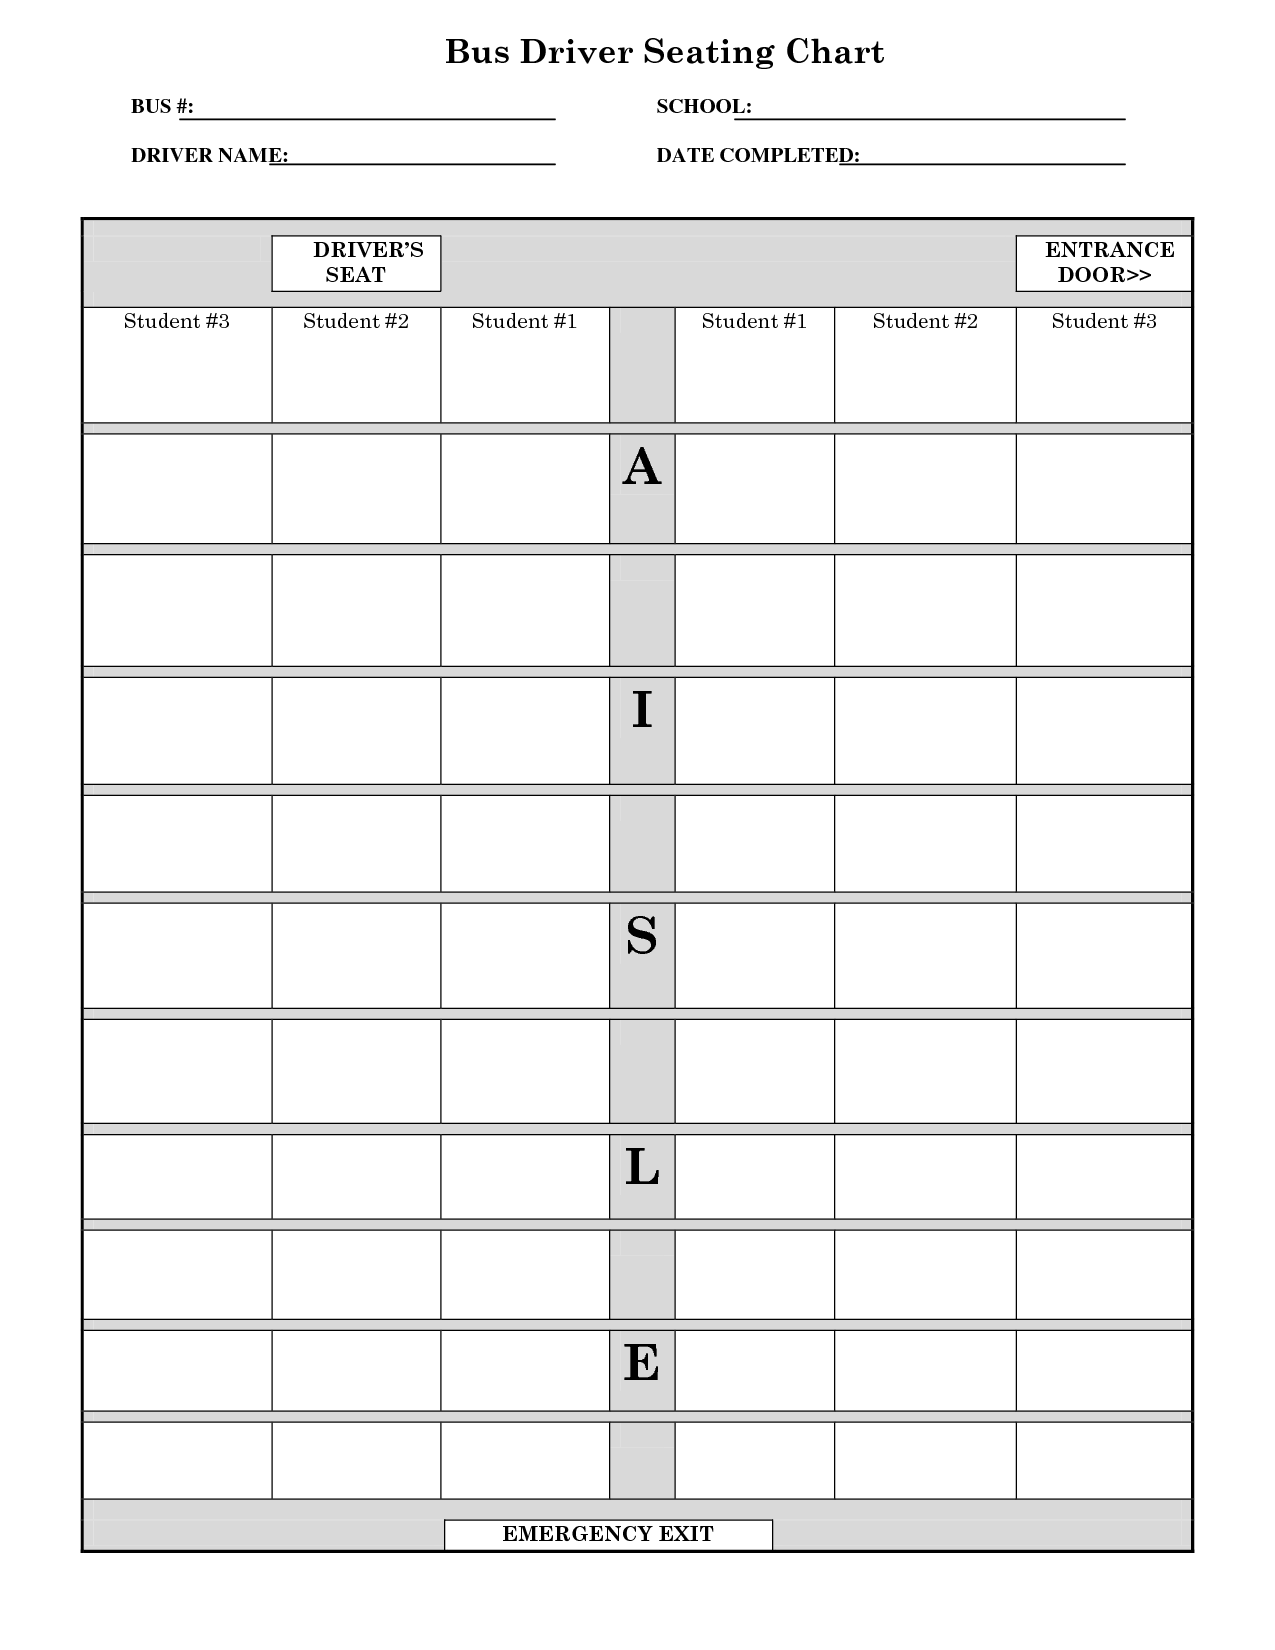 Seating chart template charts school bus safety buses also schoolbus rh pinterest